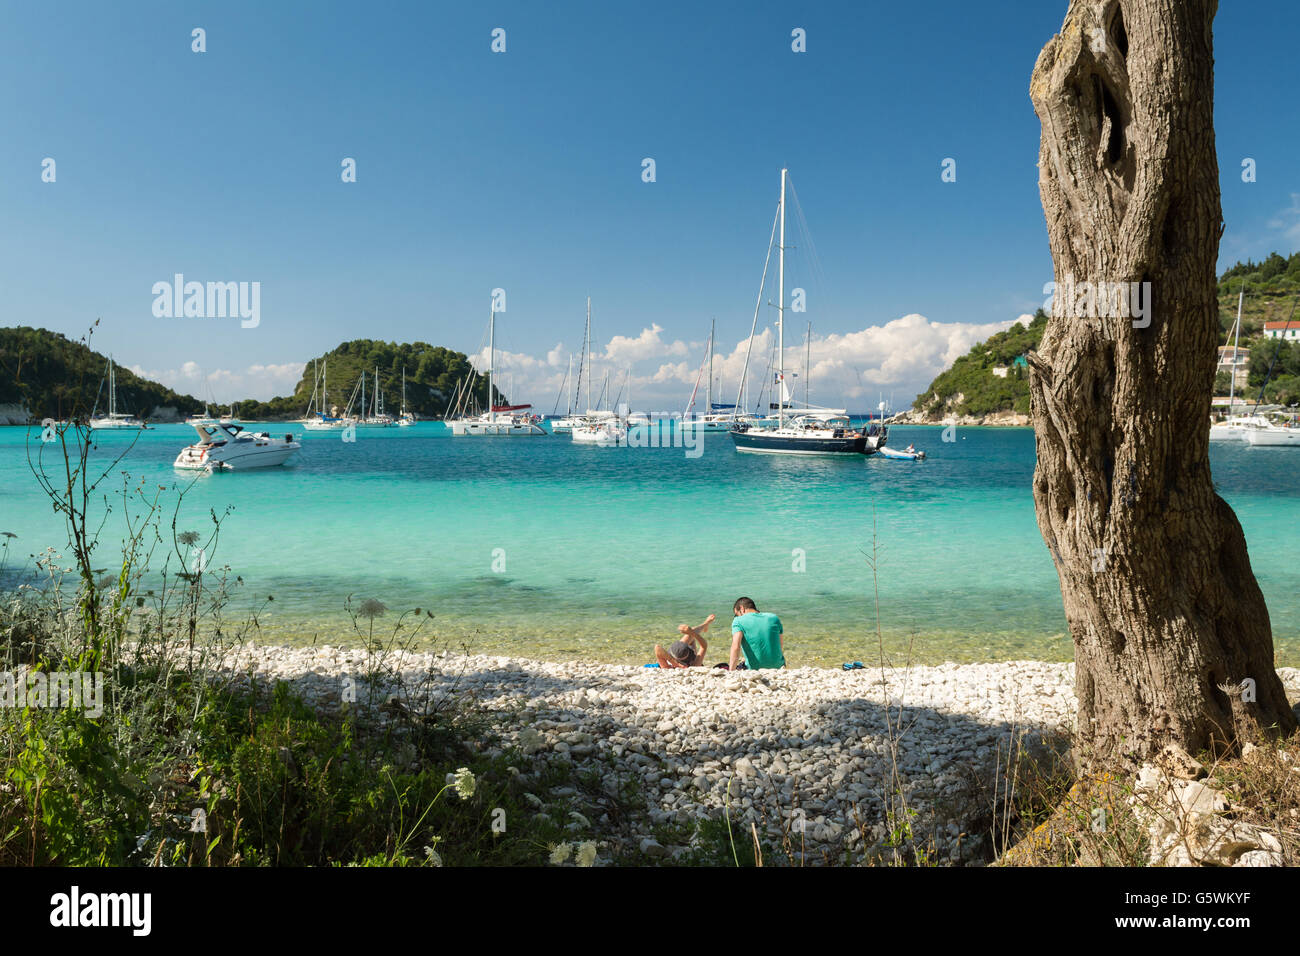 young couple relaxing on Harami Beach looking out at the turquoise waters of Lakka Bay, Lakka, Paxos, Greece - Stock Image